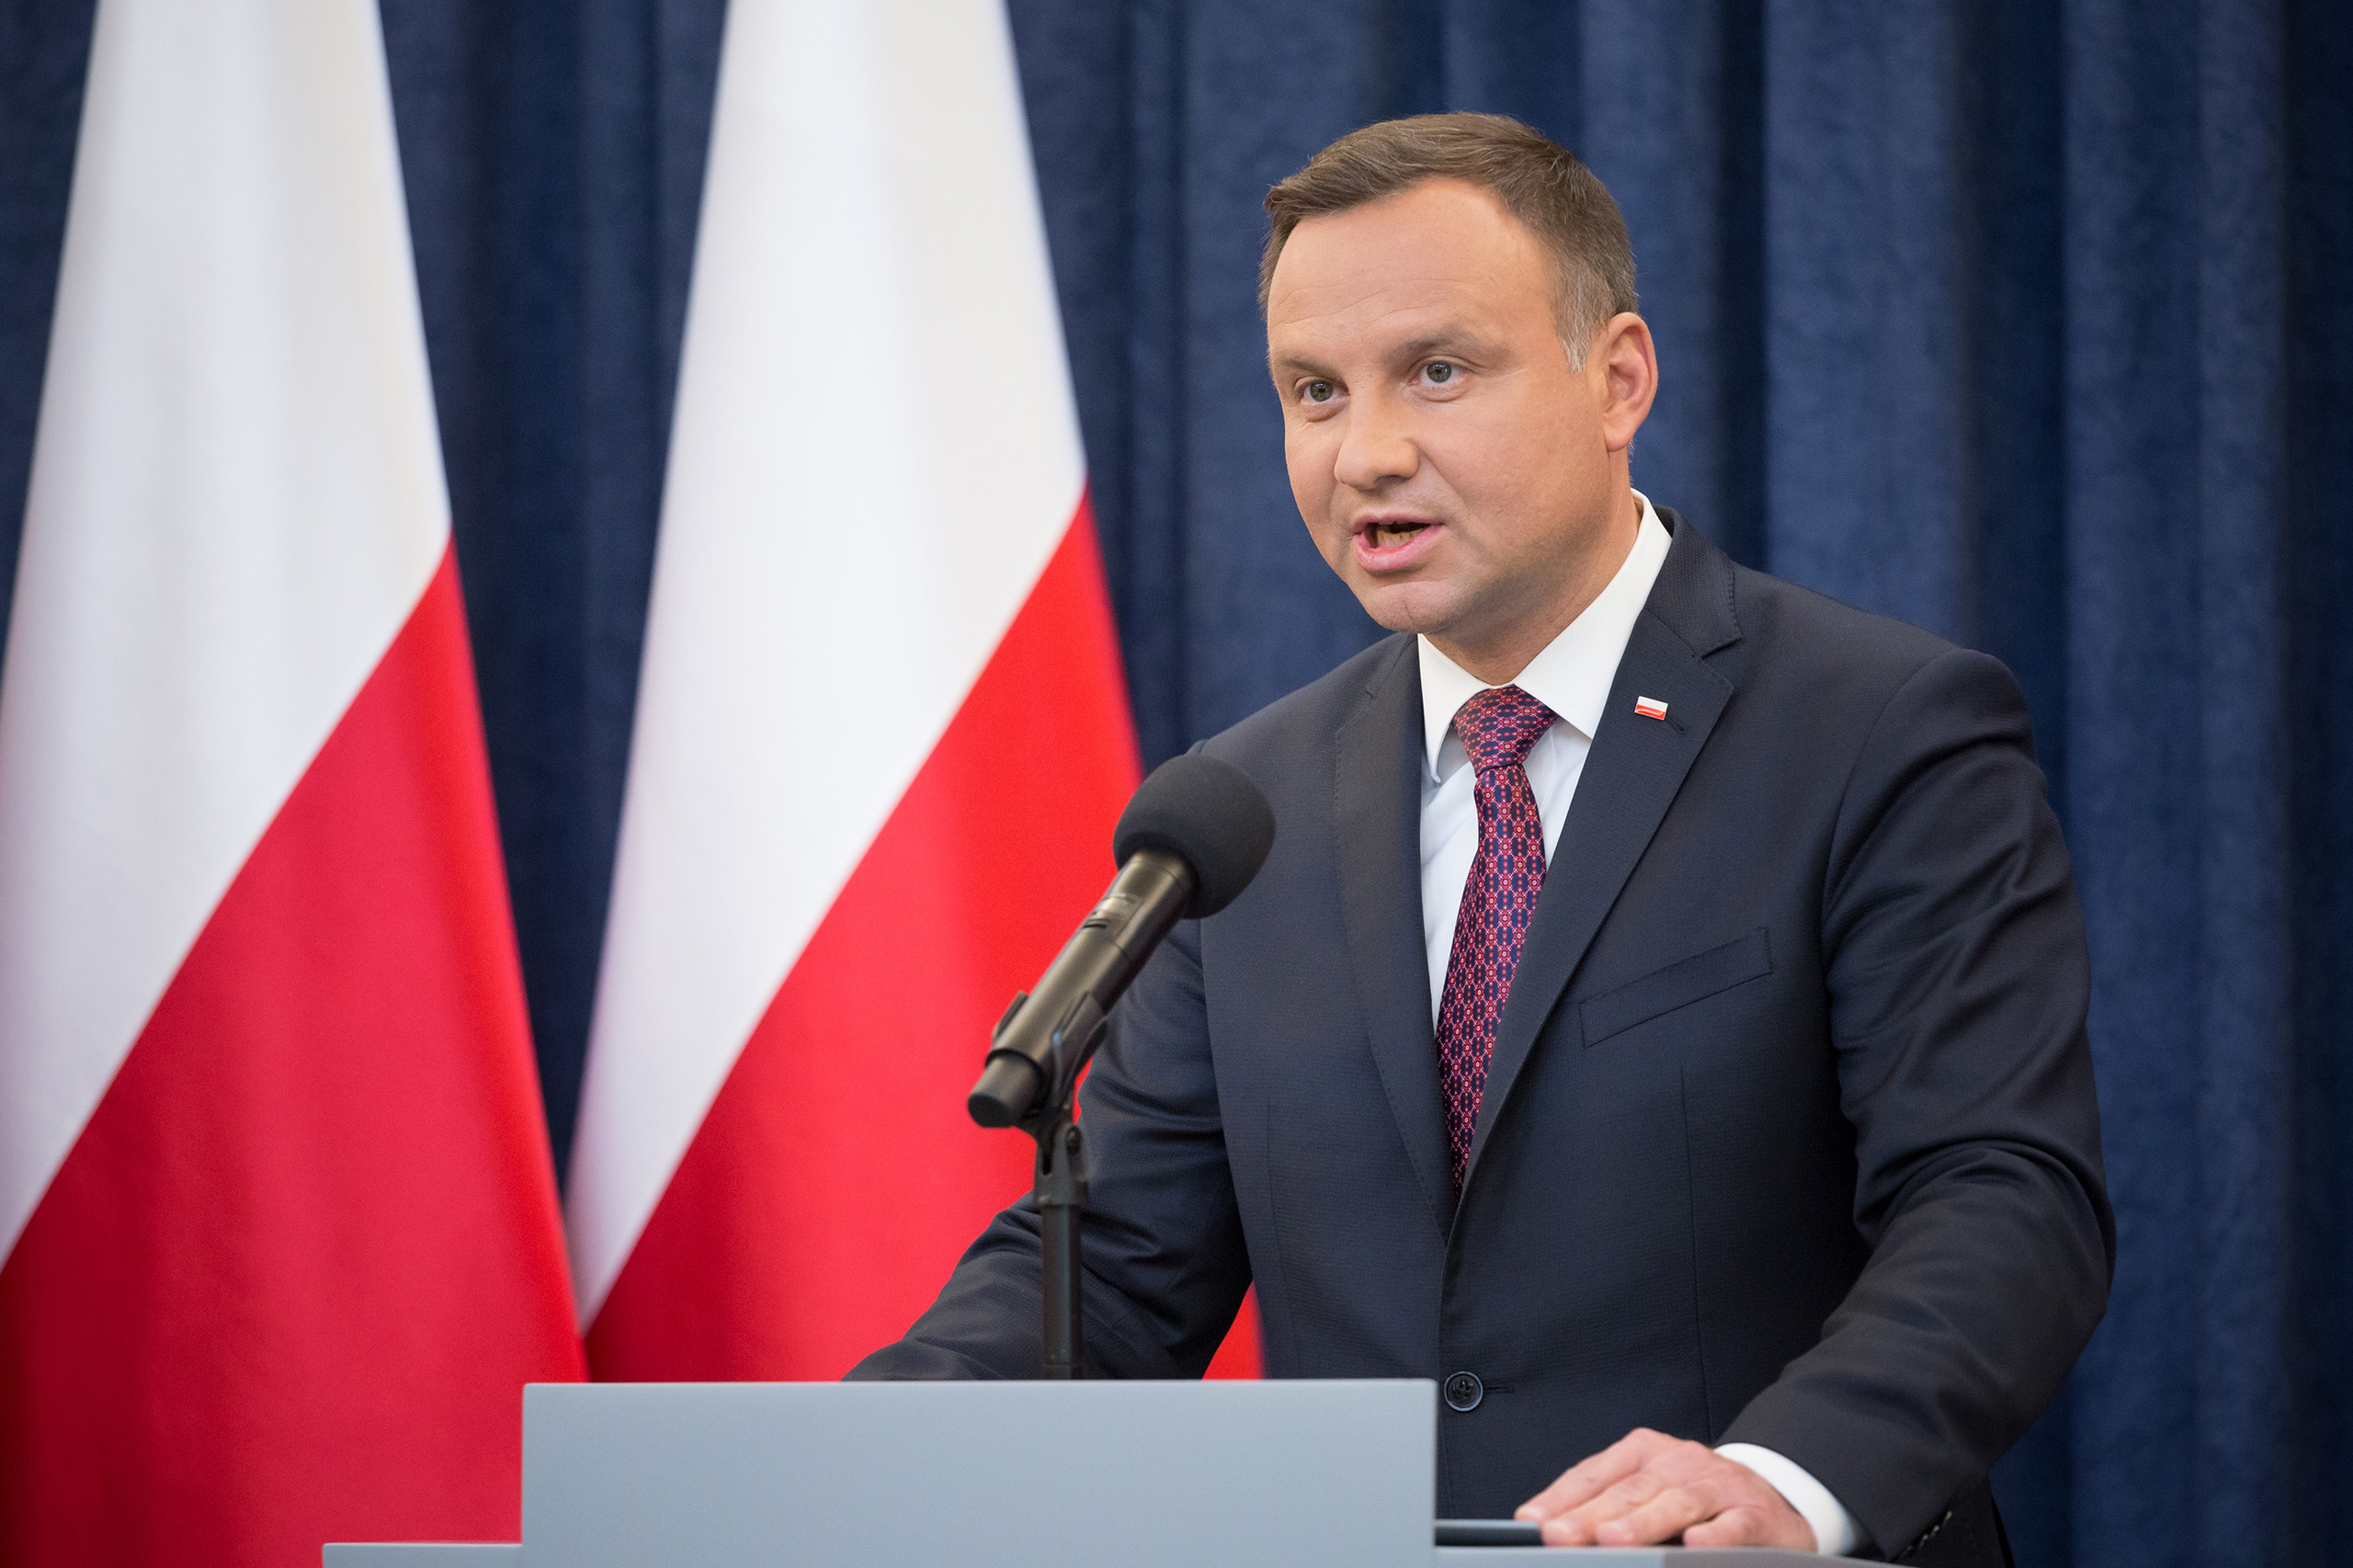 President of Poland, Andrzej Duda, makes a statement about changes in the judicial law and Supreme Court at Presidential Palace in Warsaw, Poland on July 18, 2017.